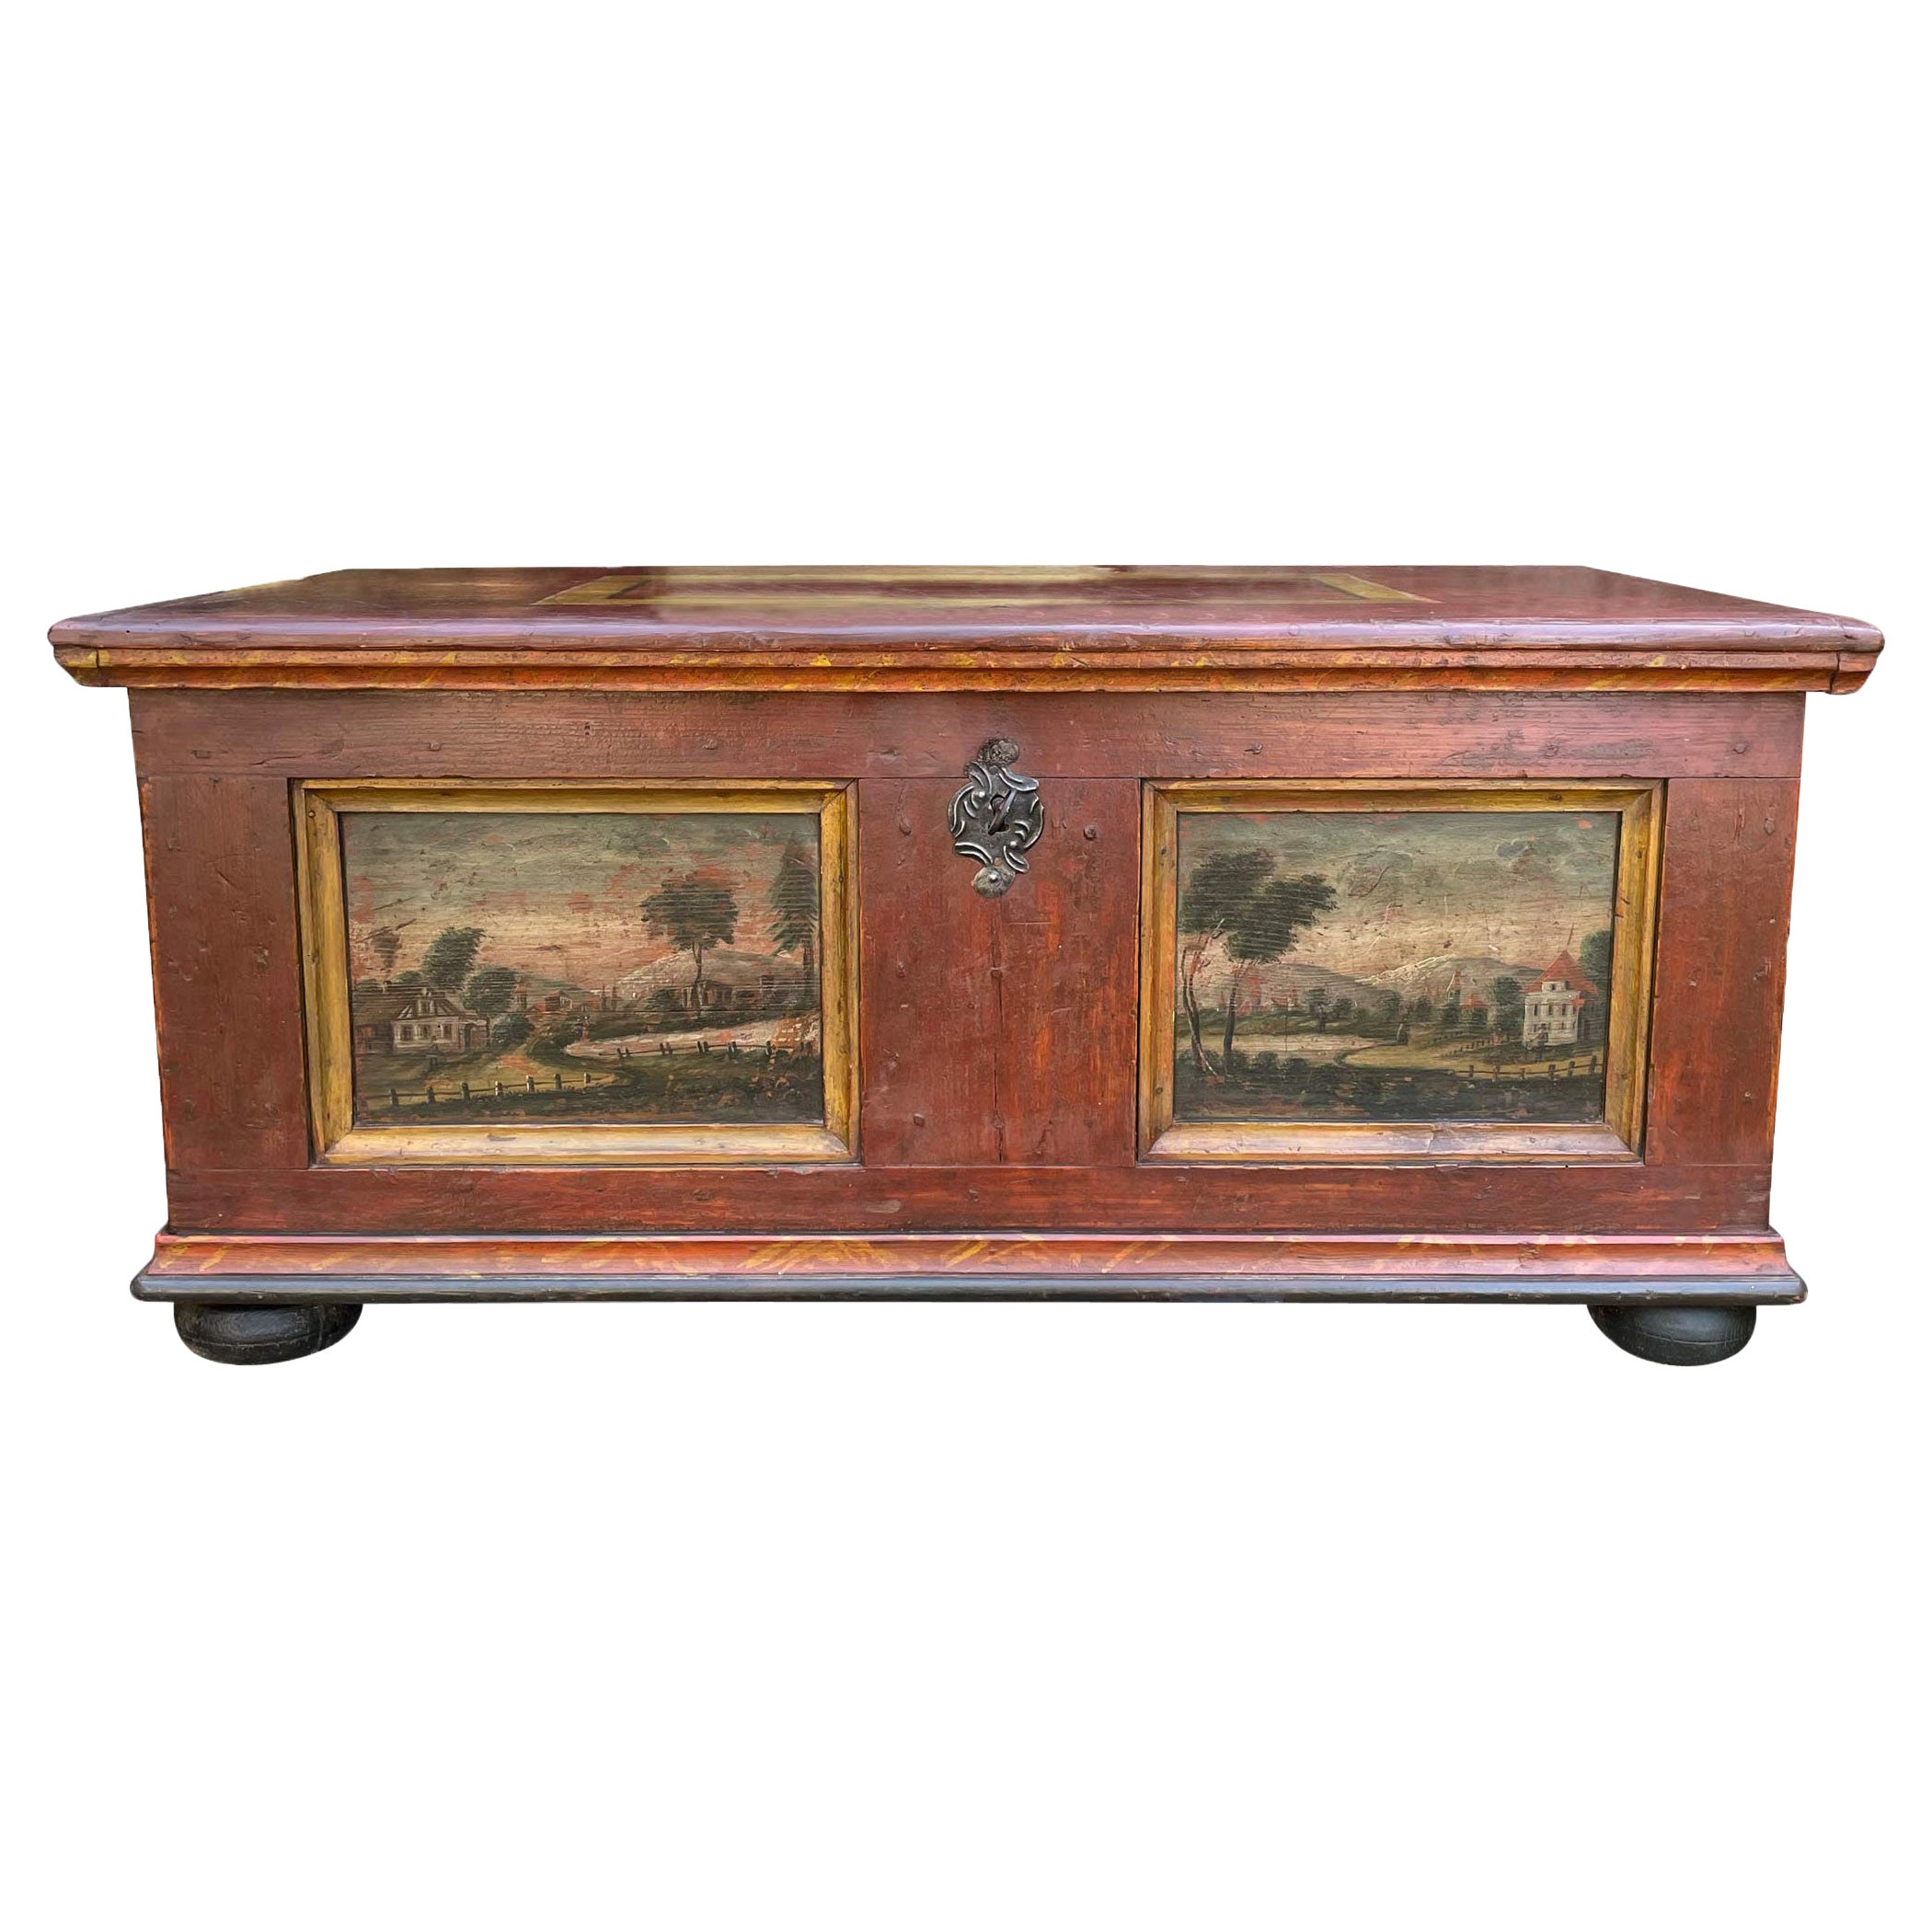 Blanket Chest, Dark Red Landscape Painted, Early 19th - Central Europe